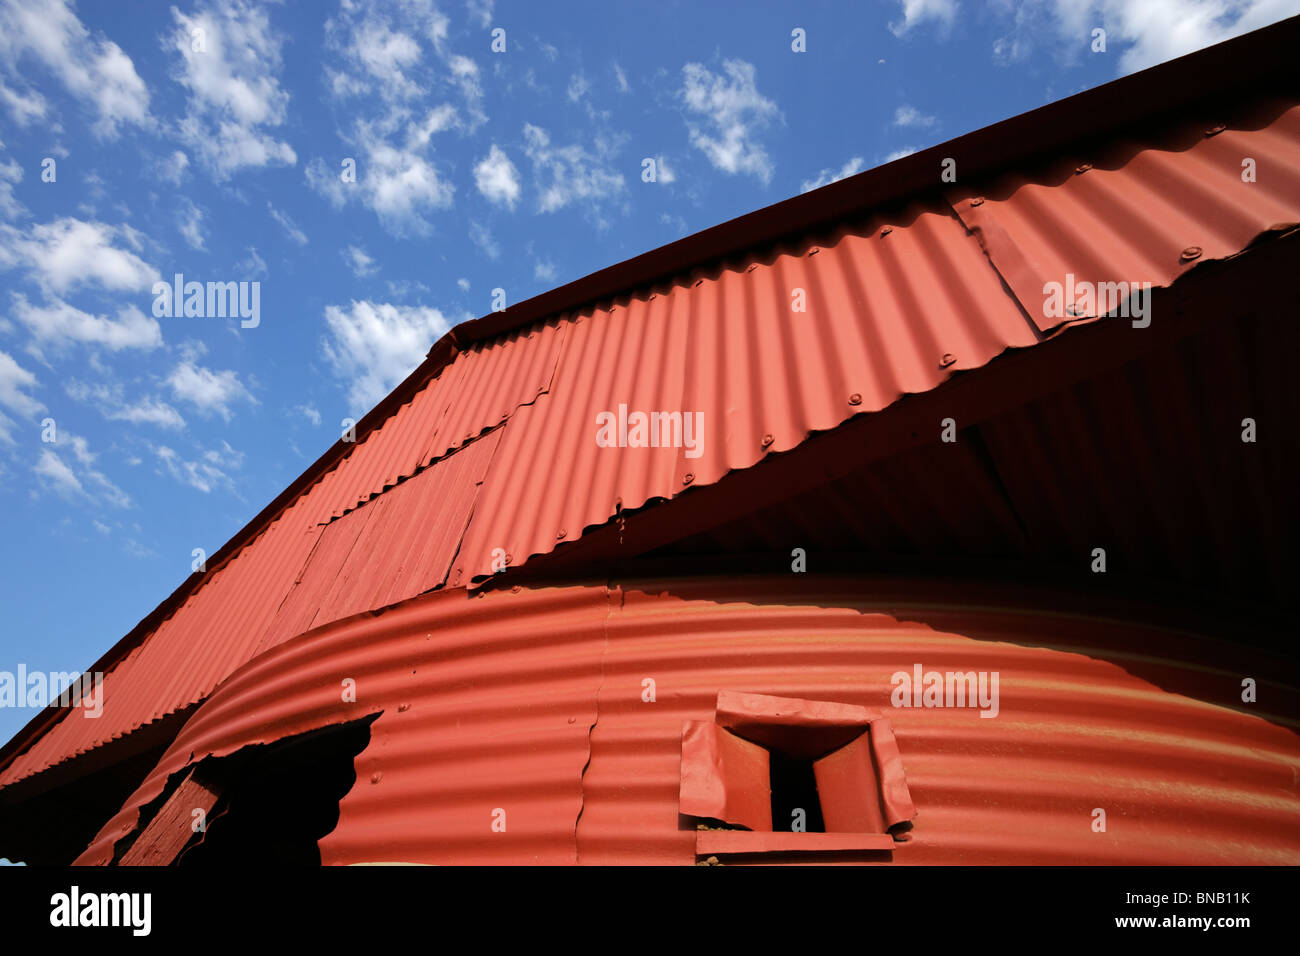 Red Tin Roof Stock Photos Amp Red Tin Roof Stock Images Alamy